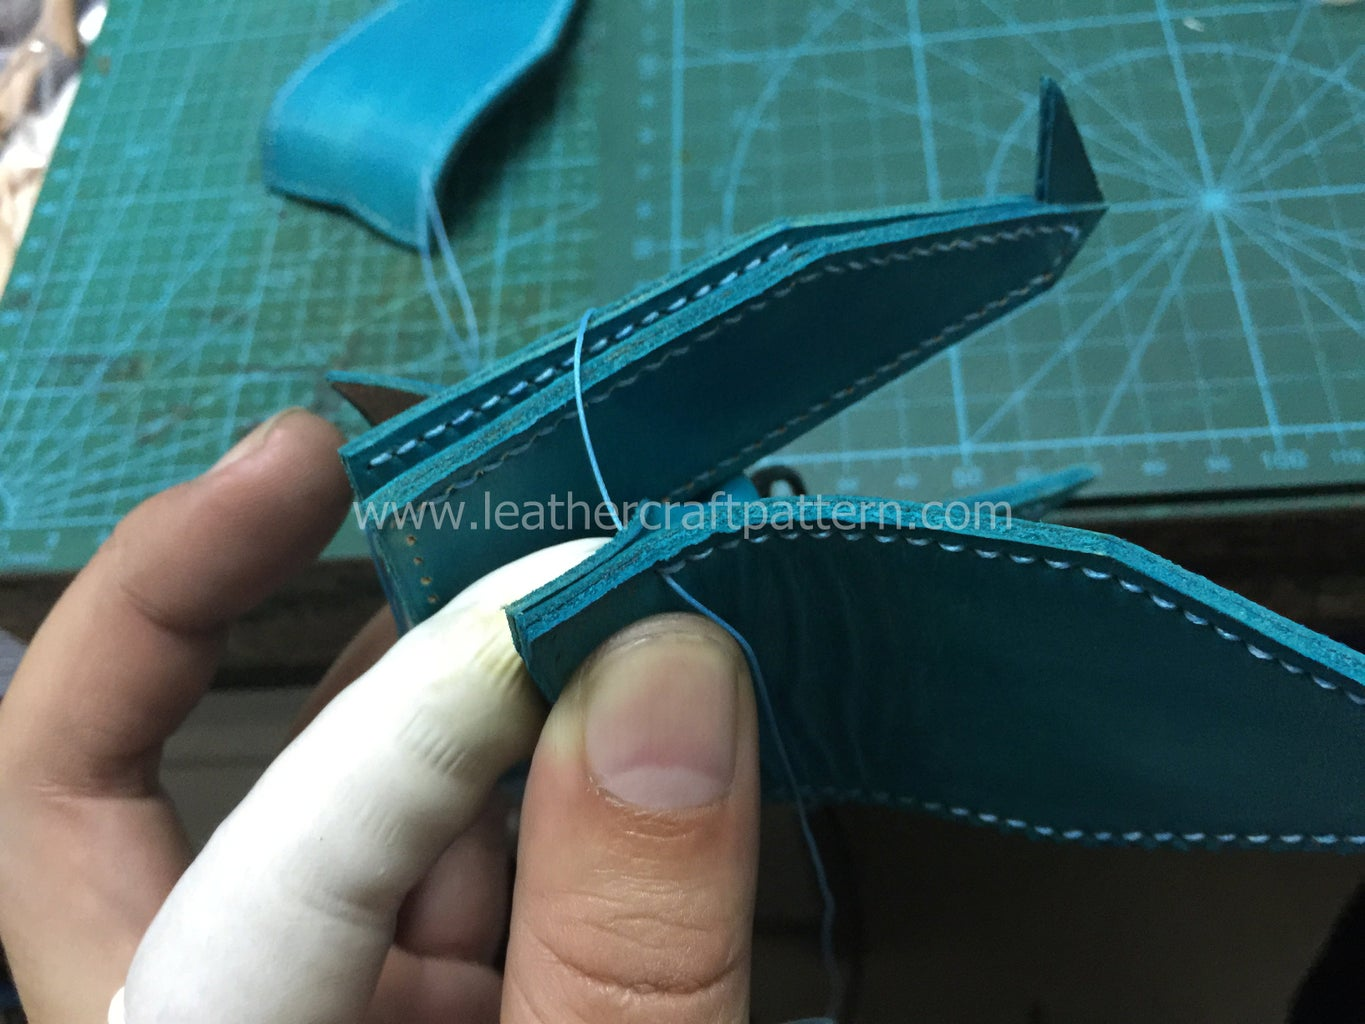 Glue and Sew 2 Pieces of Wings On, Here Please Notice, at First You Sew 2 Pieces of Wing Leather But When It Needs the Belly's Stitching Hole, Sew With Belly Together.